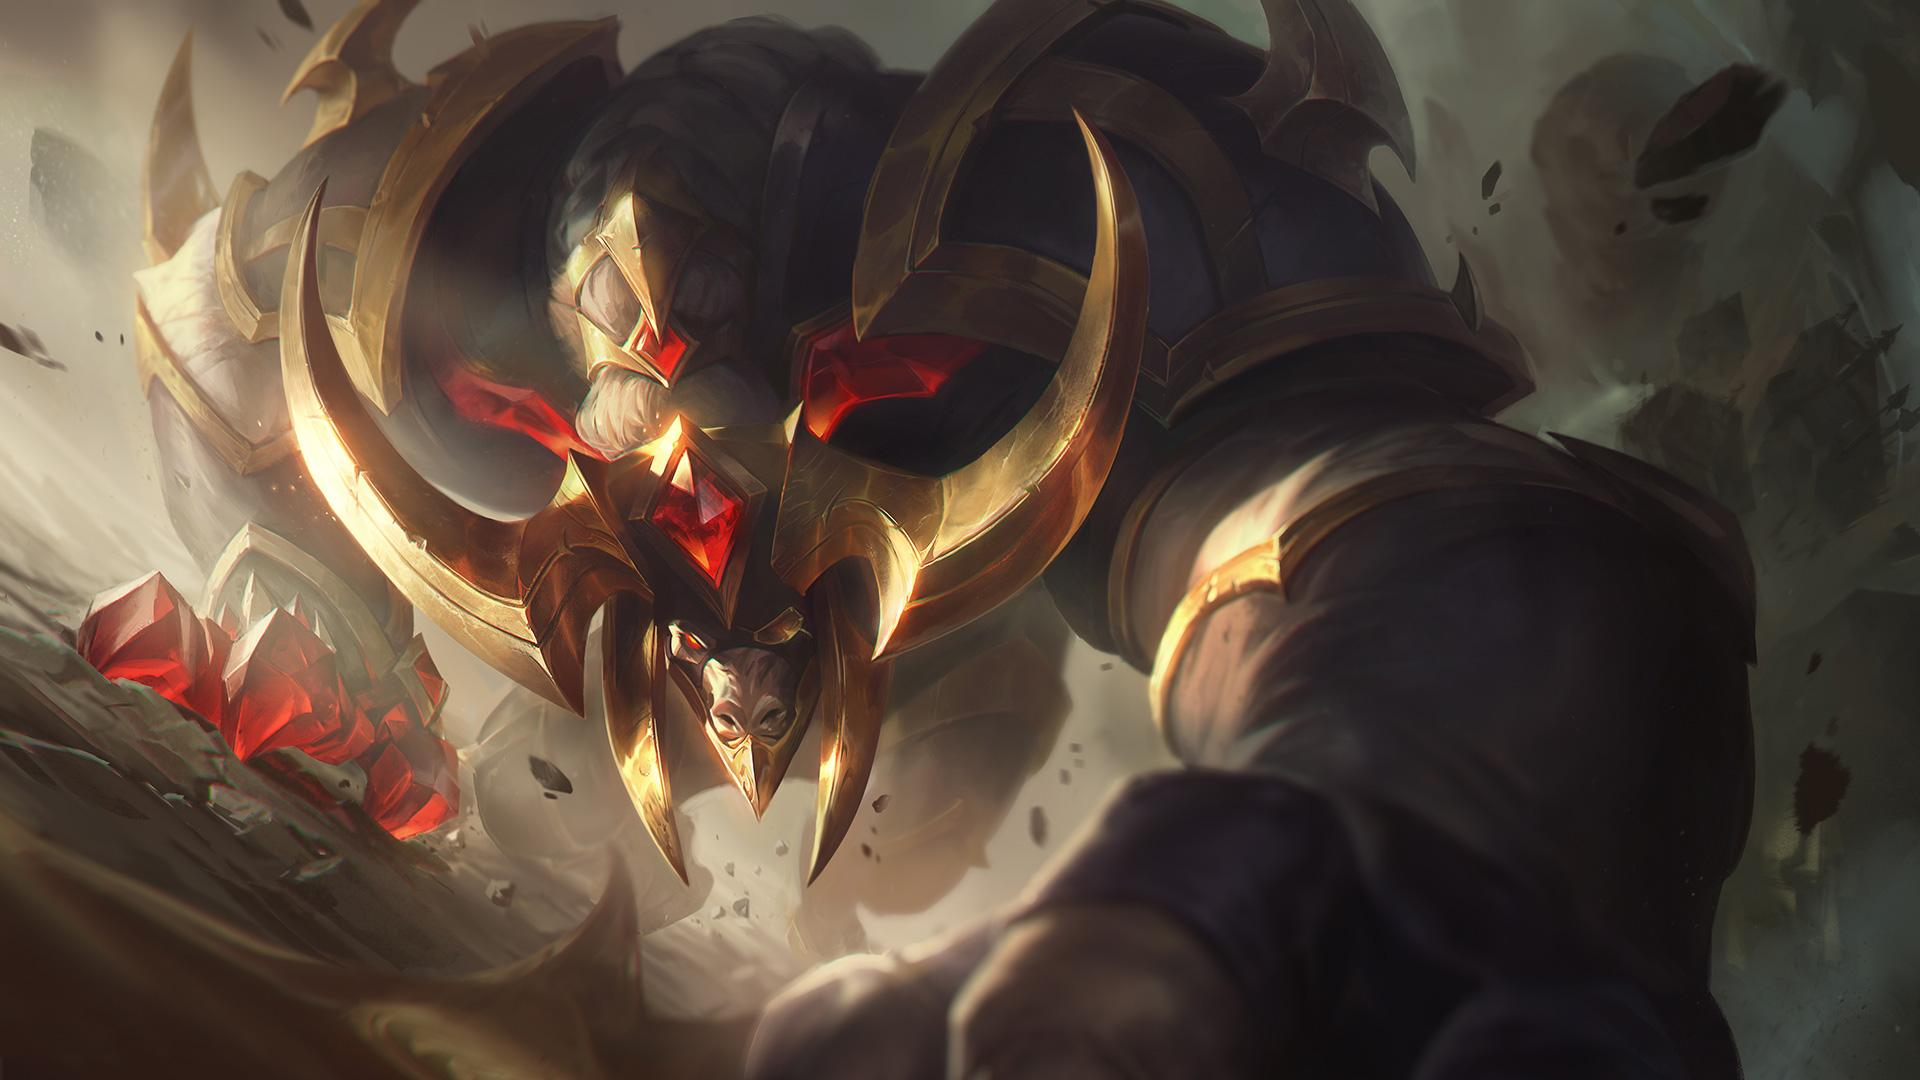 Conqueror Alistar skin is now live in the LoL store.